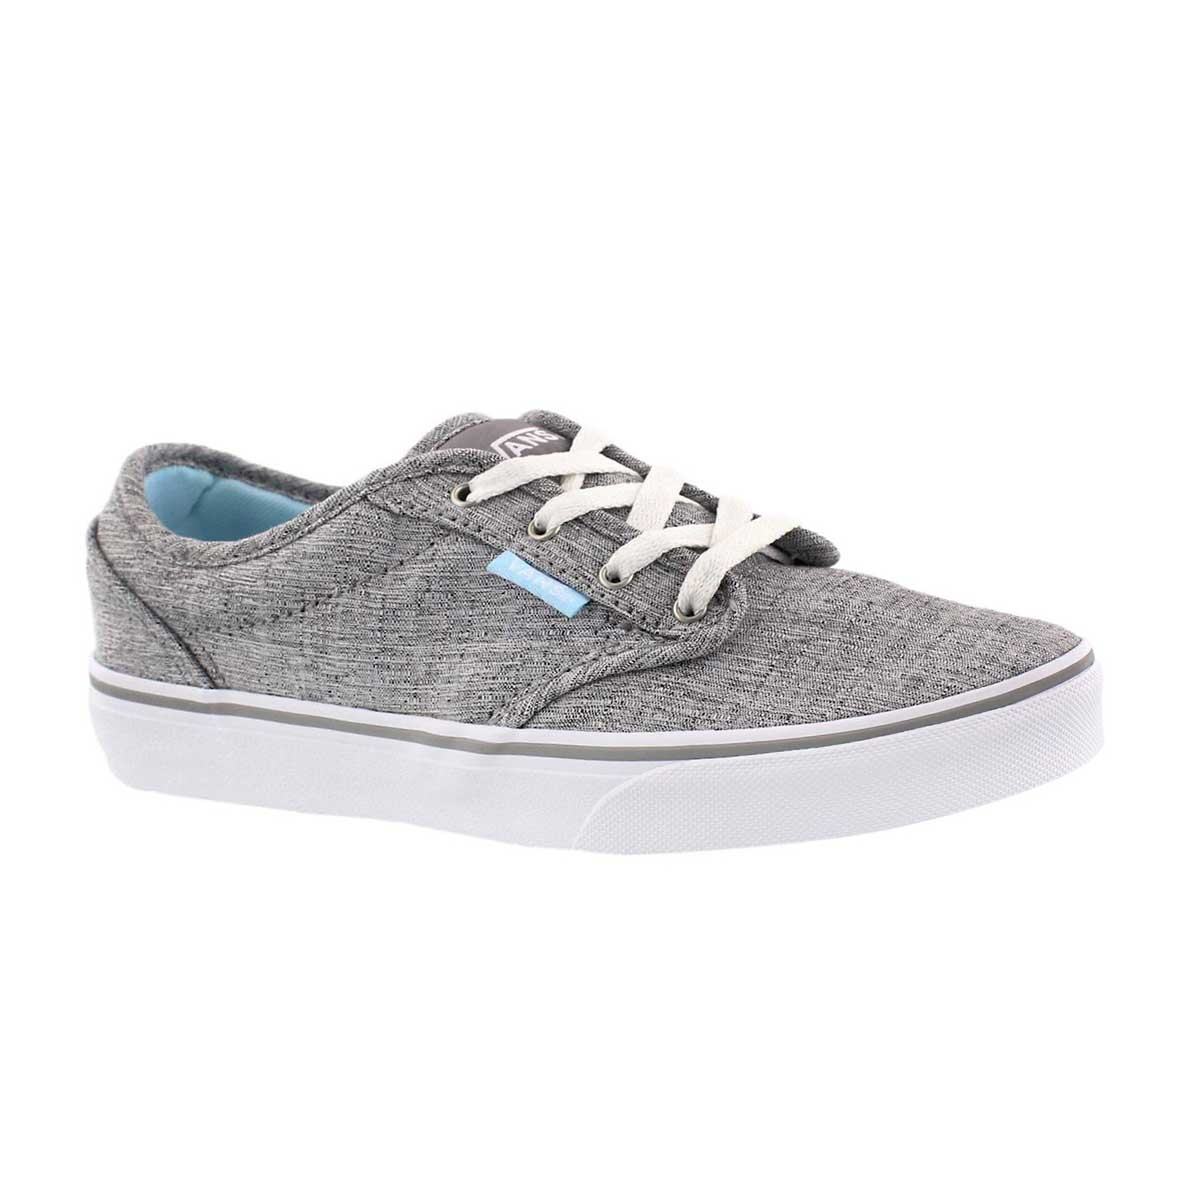 Girls' ATWOOD grey/blue lace up sneakers